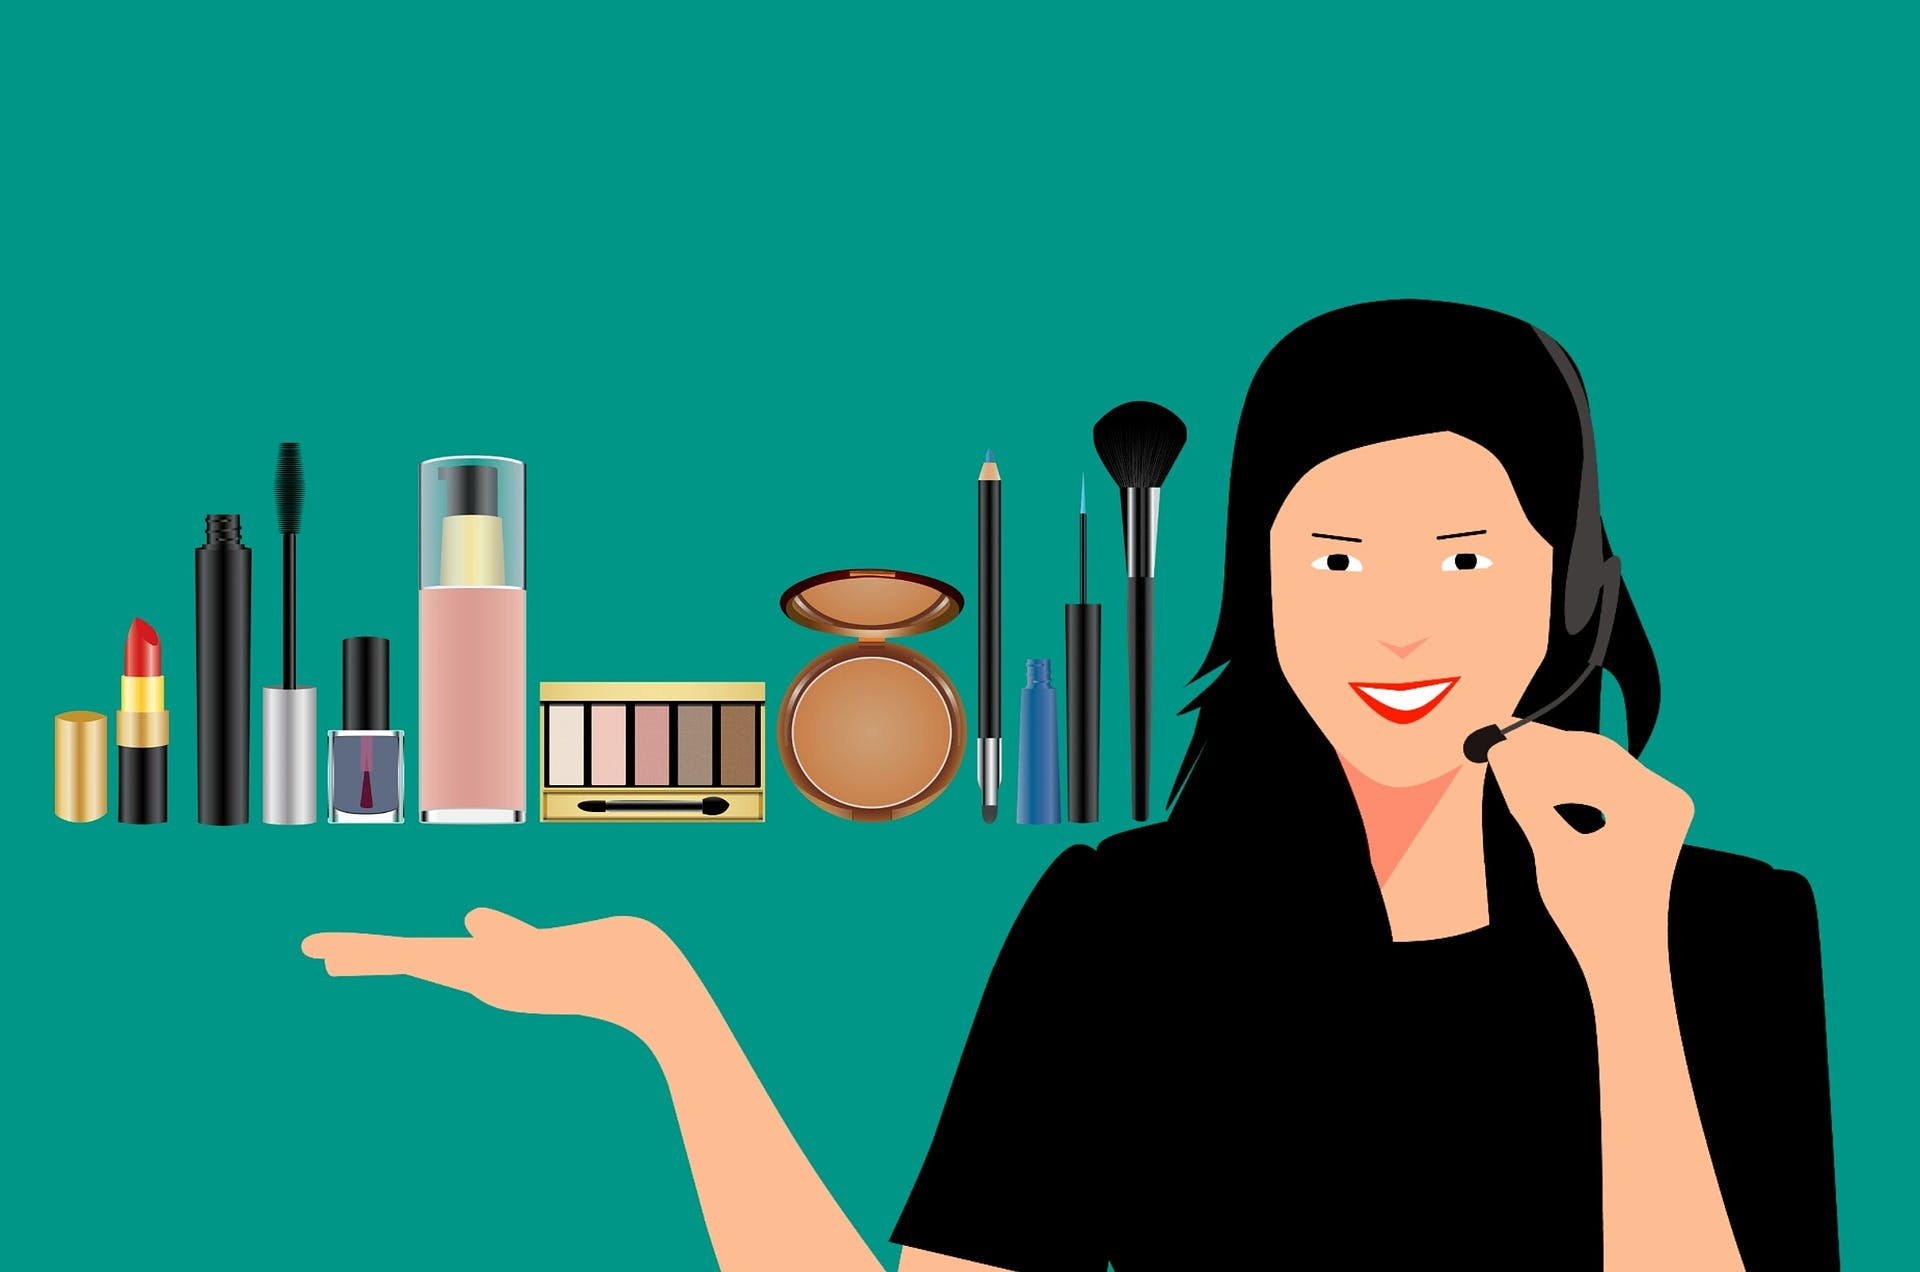 A cartoon illustration of a woman with a headset on and several makeup products she is marketing over the phone besides her